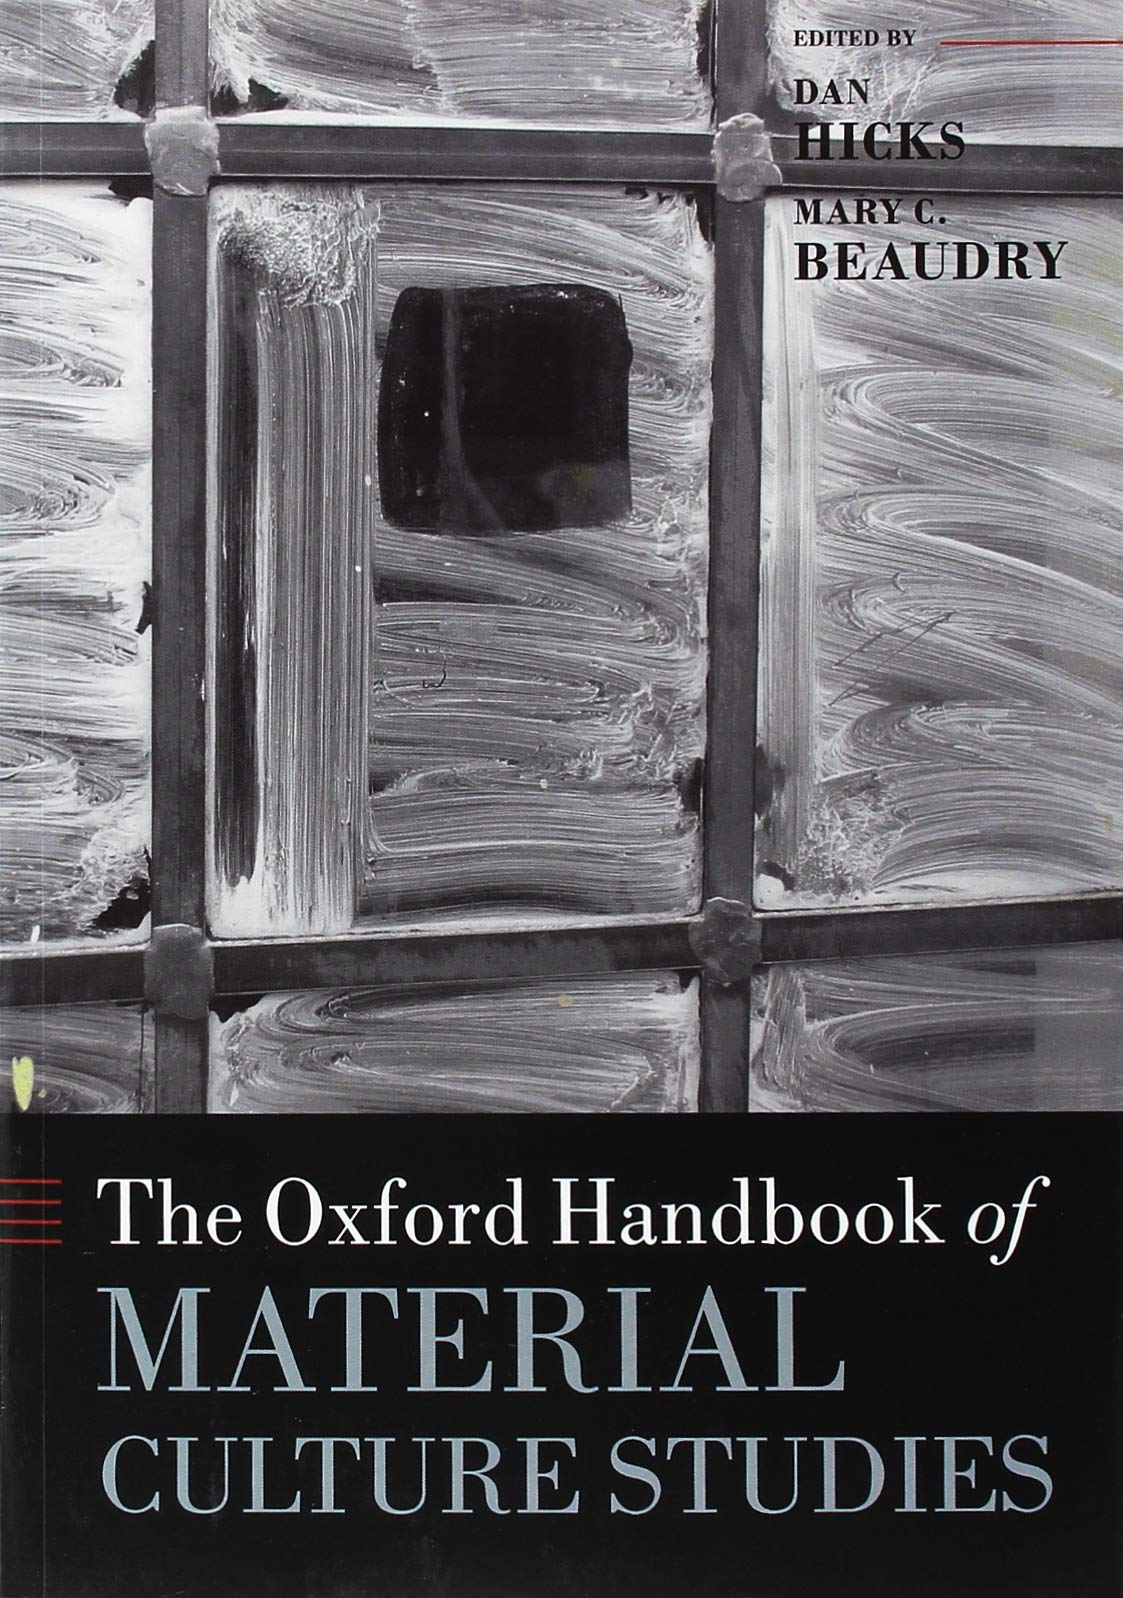 Image OfThe Oxford Handbook Of Material Culture Studies (Oxford Handbooks)